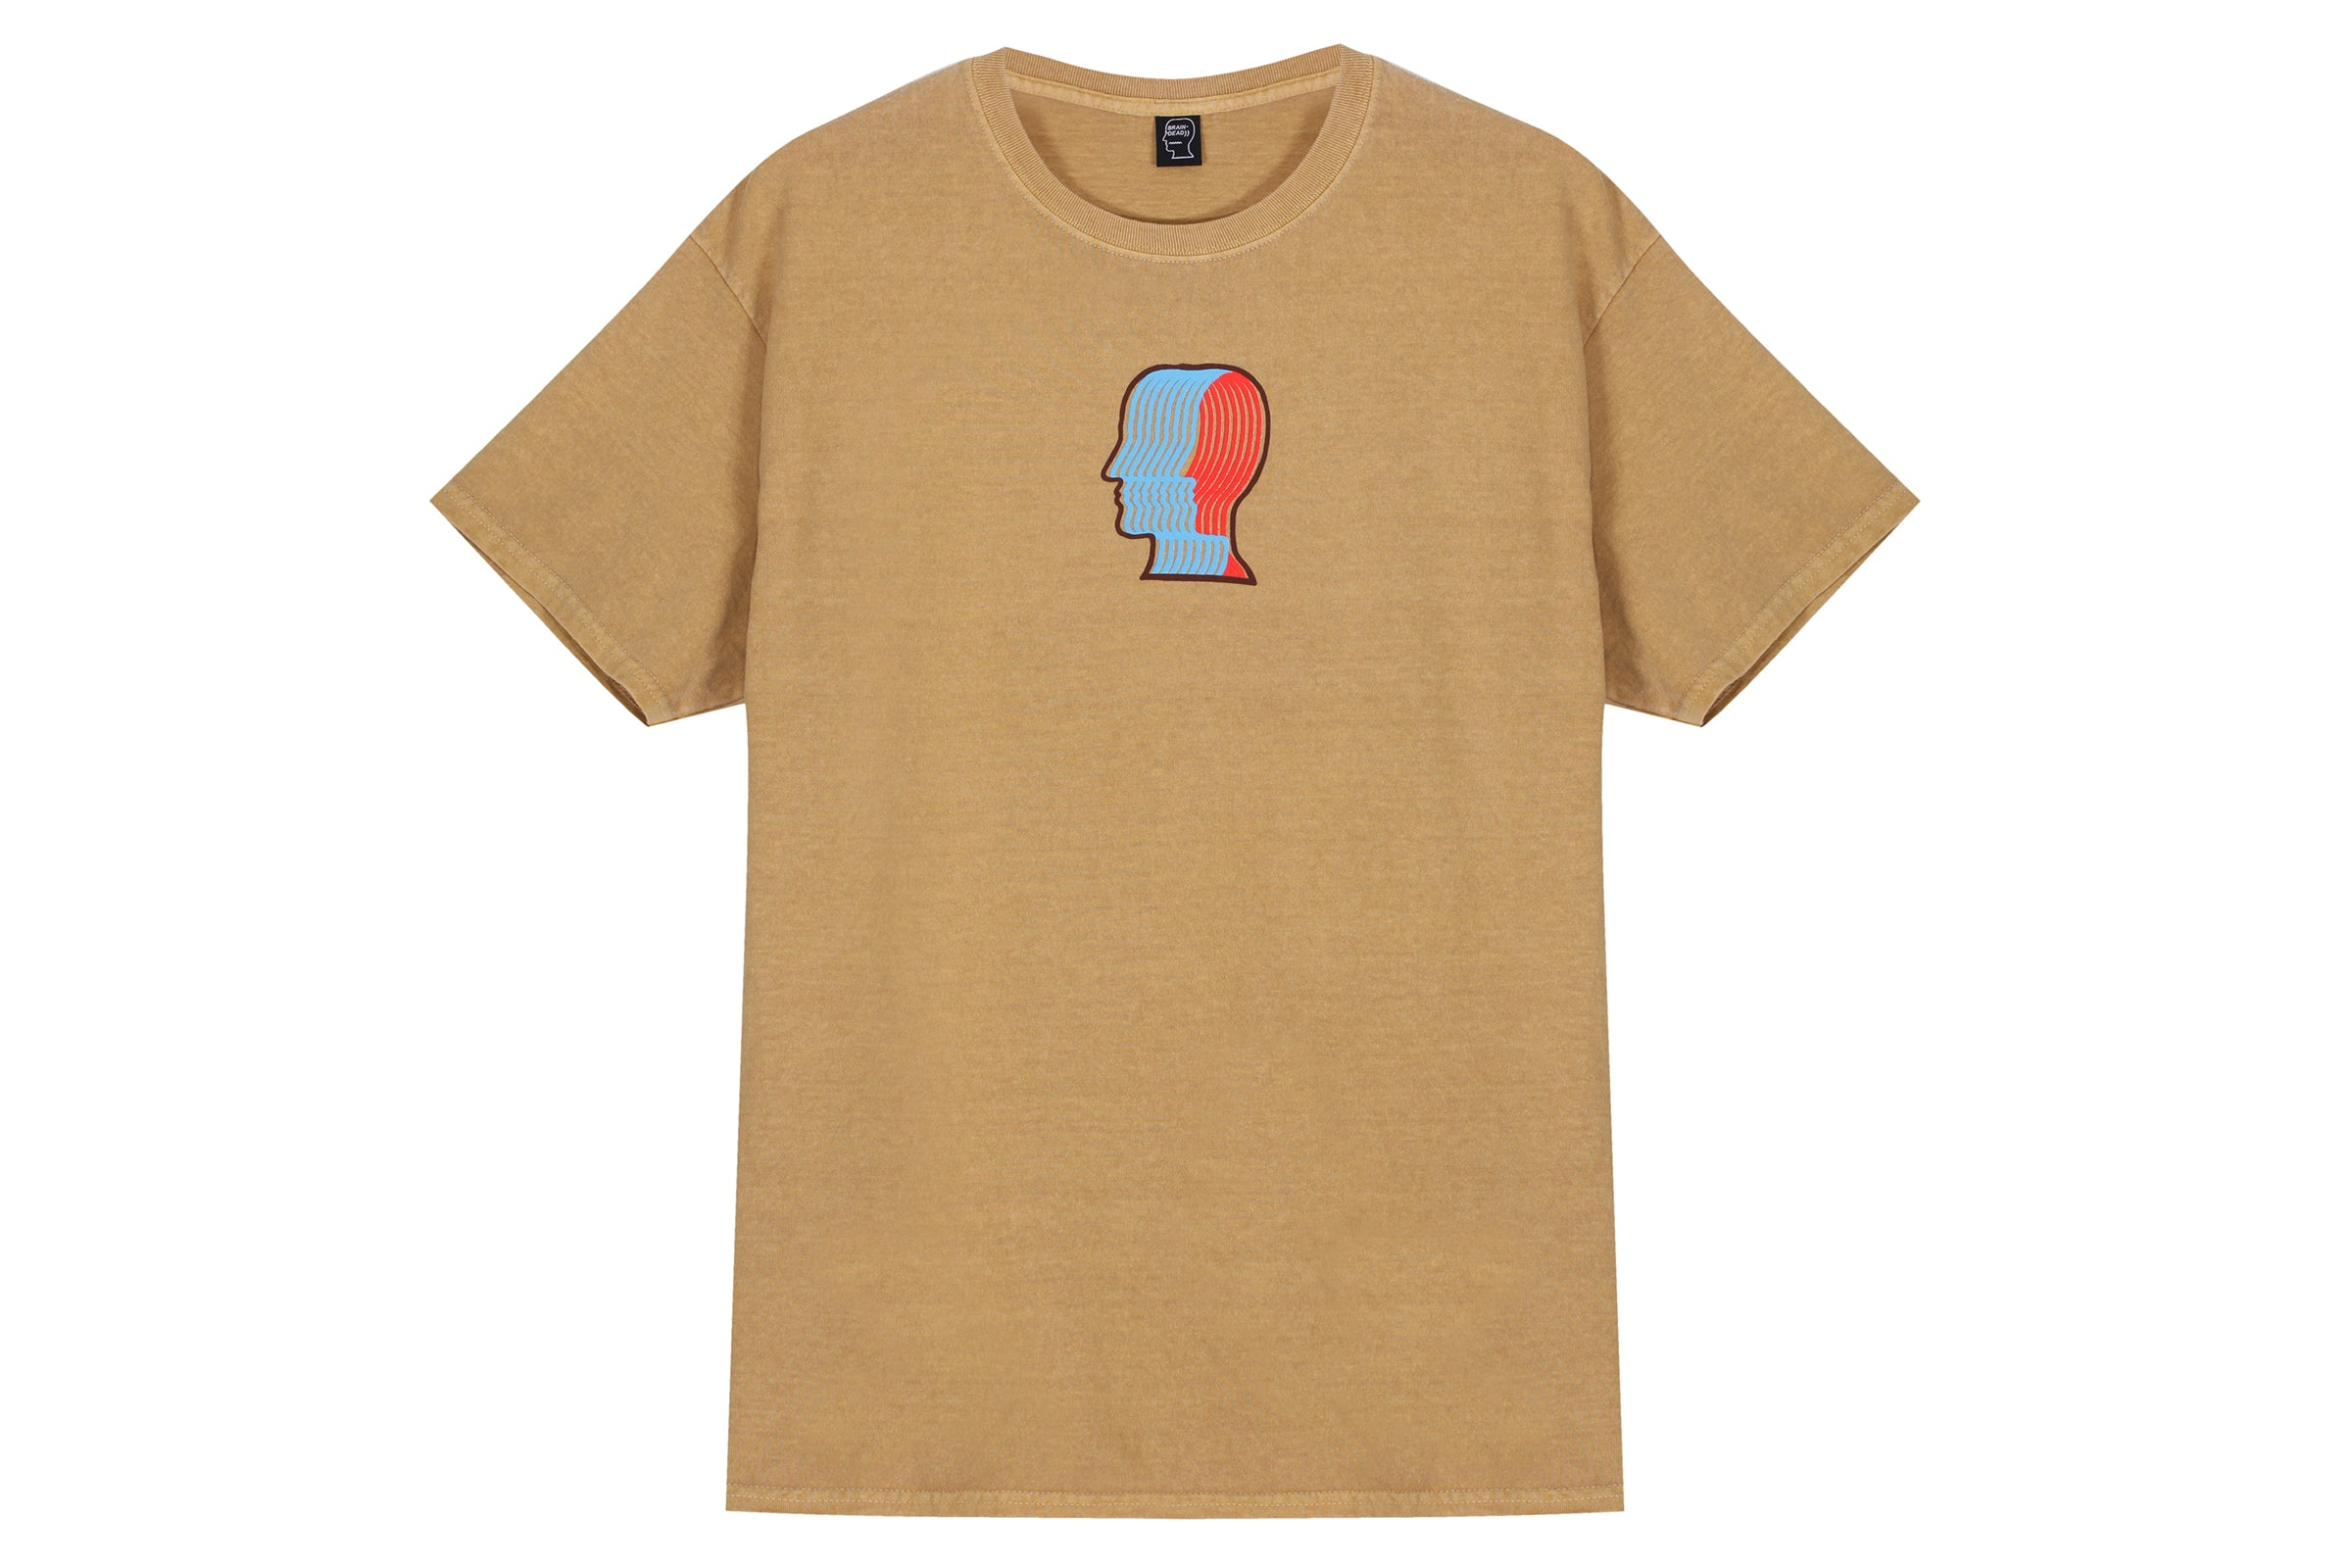 Braindead Breathing Problems SS Tee